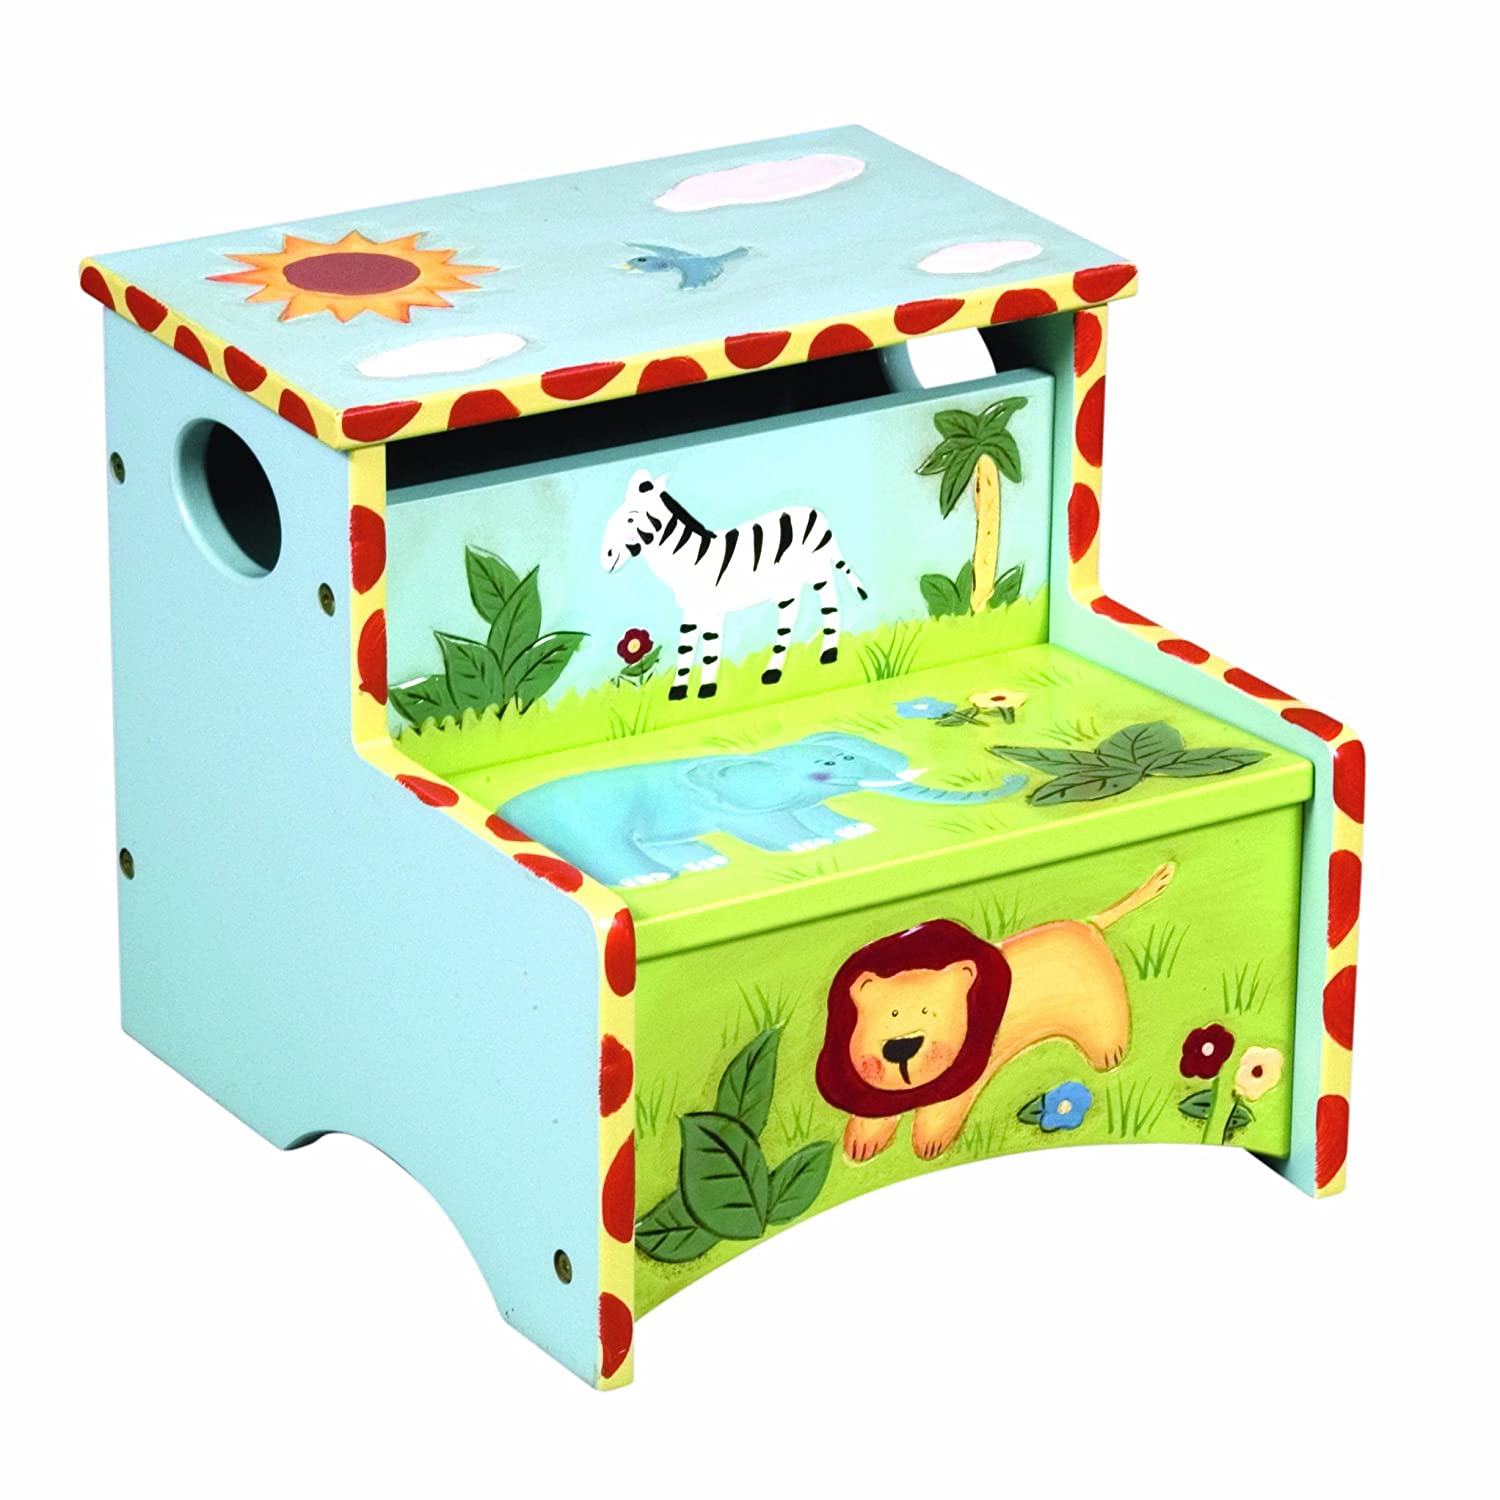 Choosing Top Quality Step Stool For Kids Became Easier